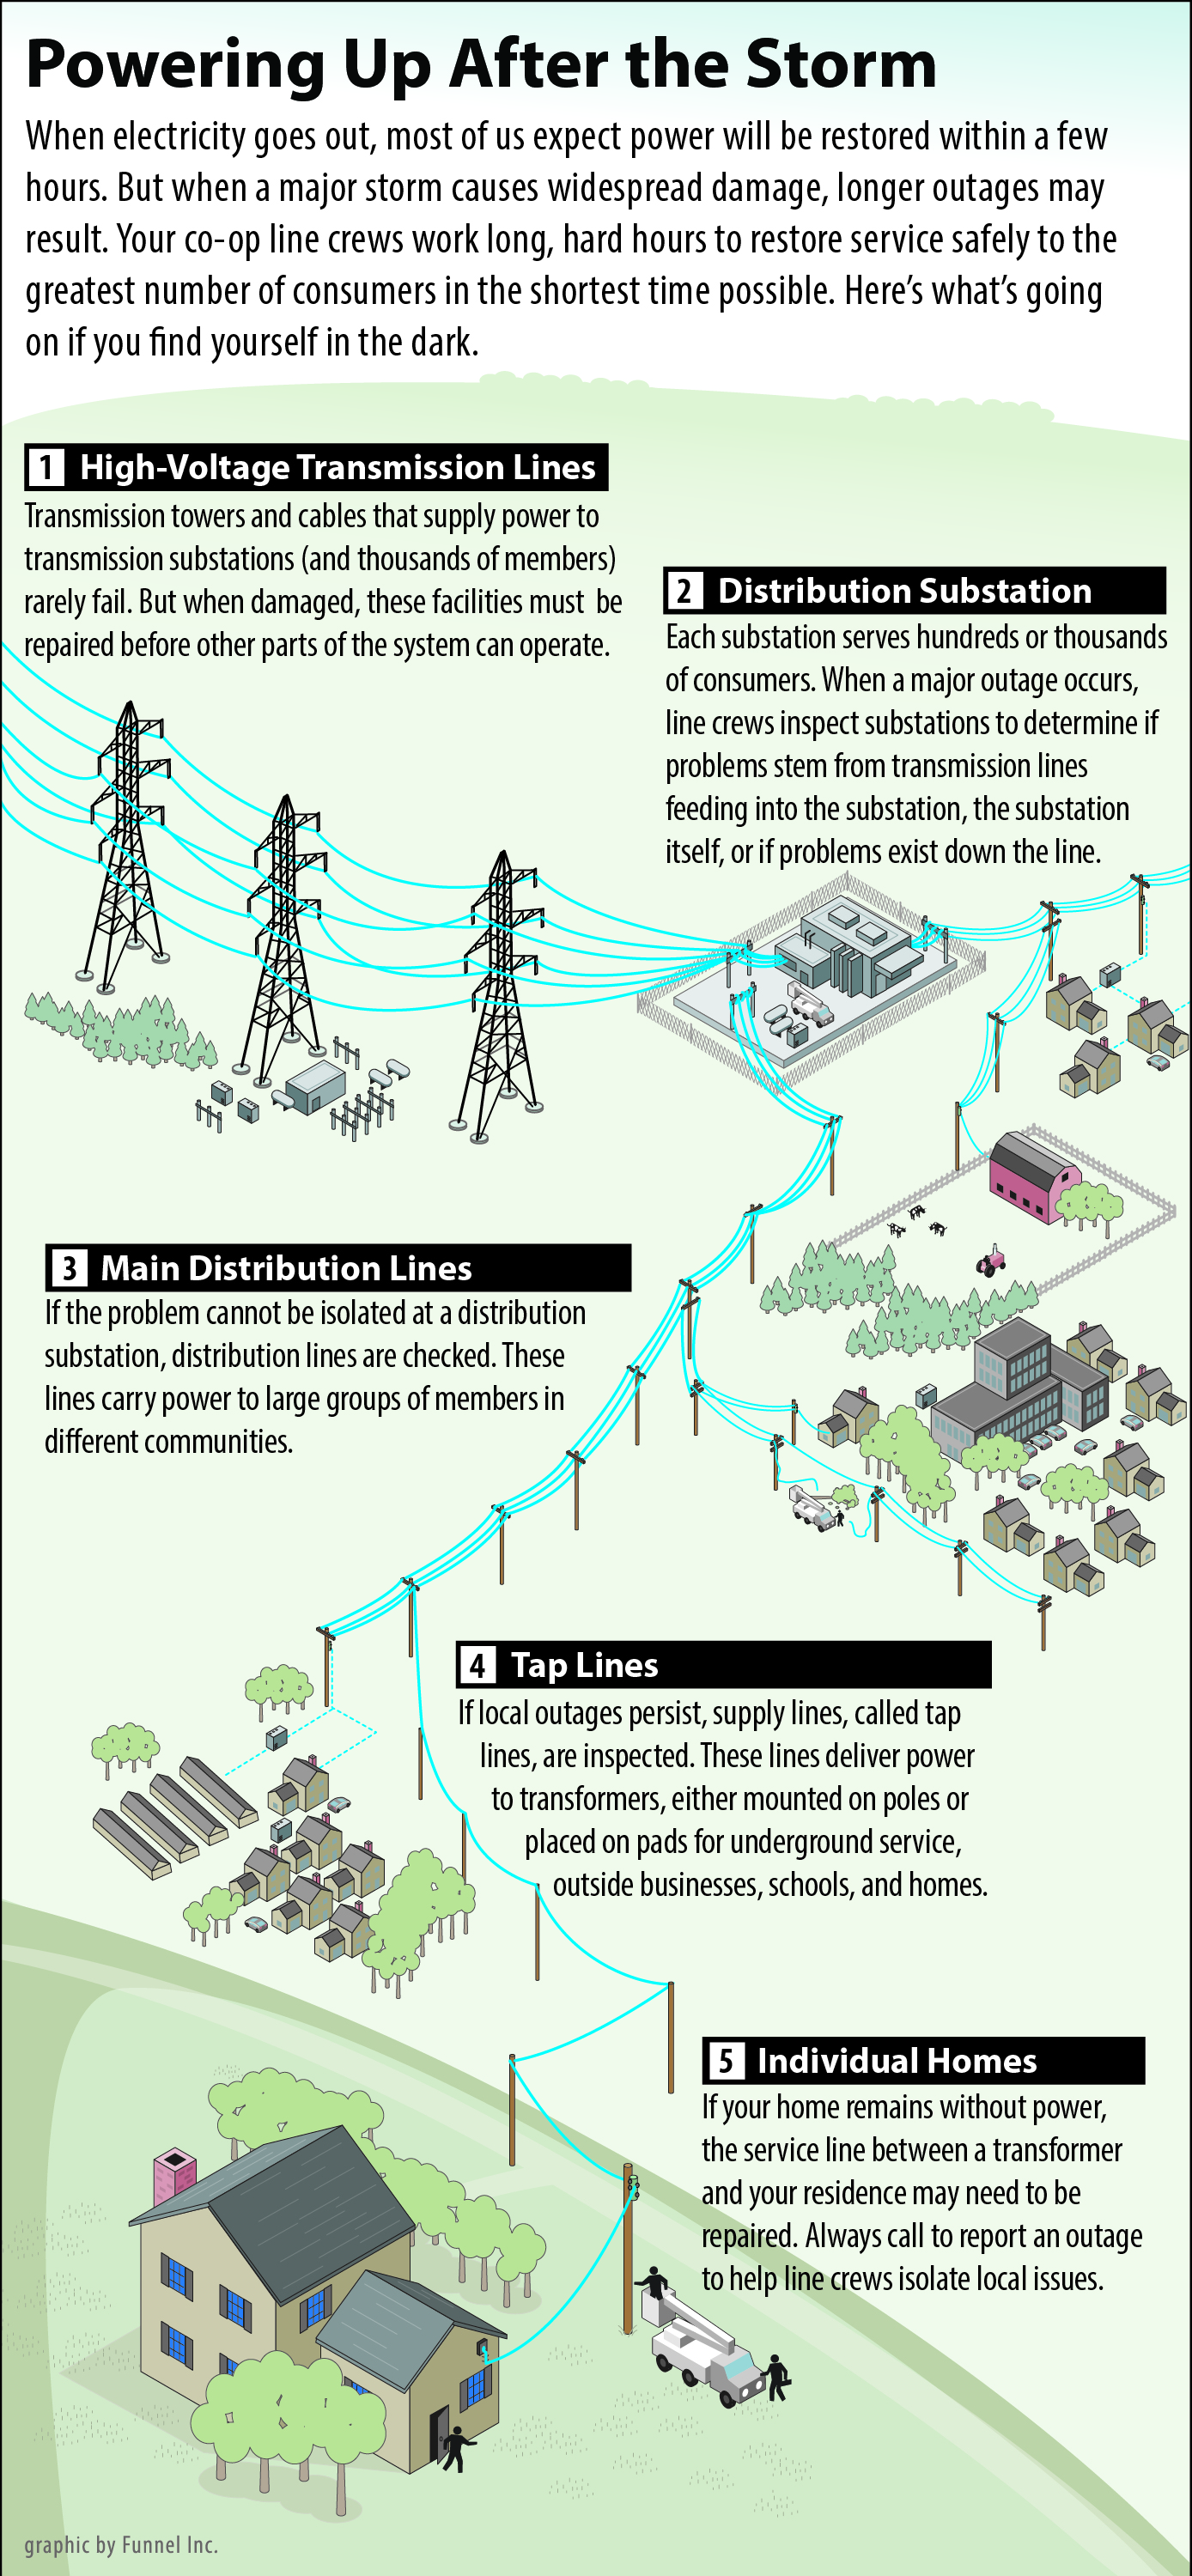 Infographic Depicts How Electricity Is Delivered And Restores After A Storm.